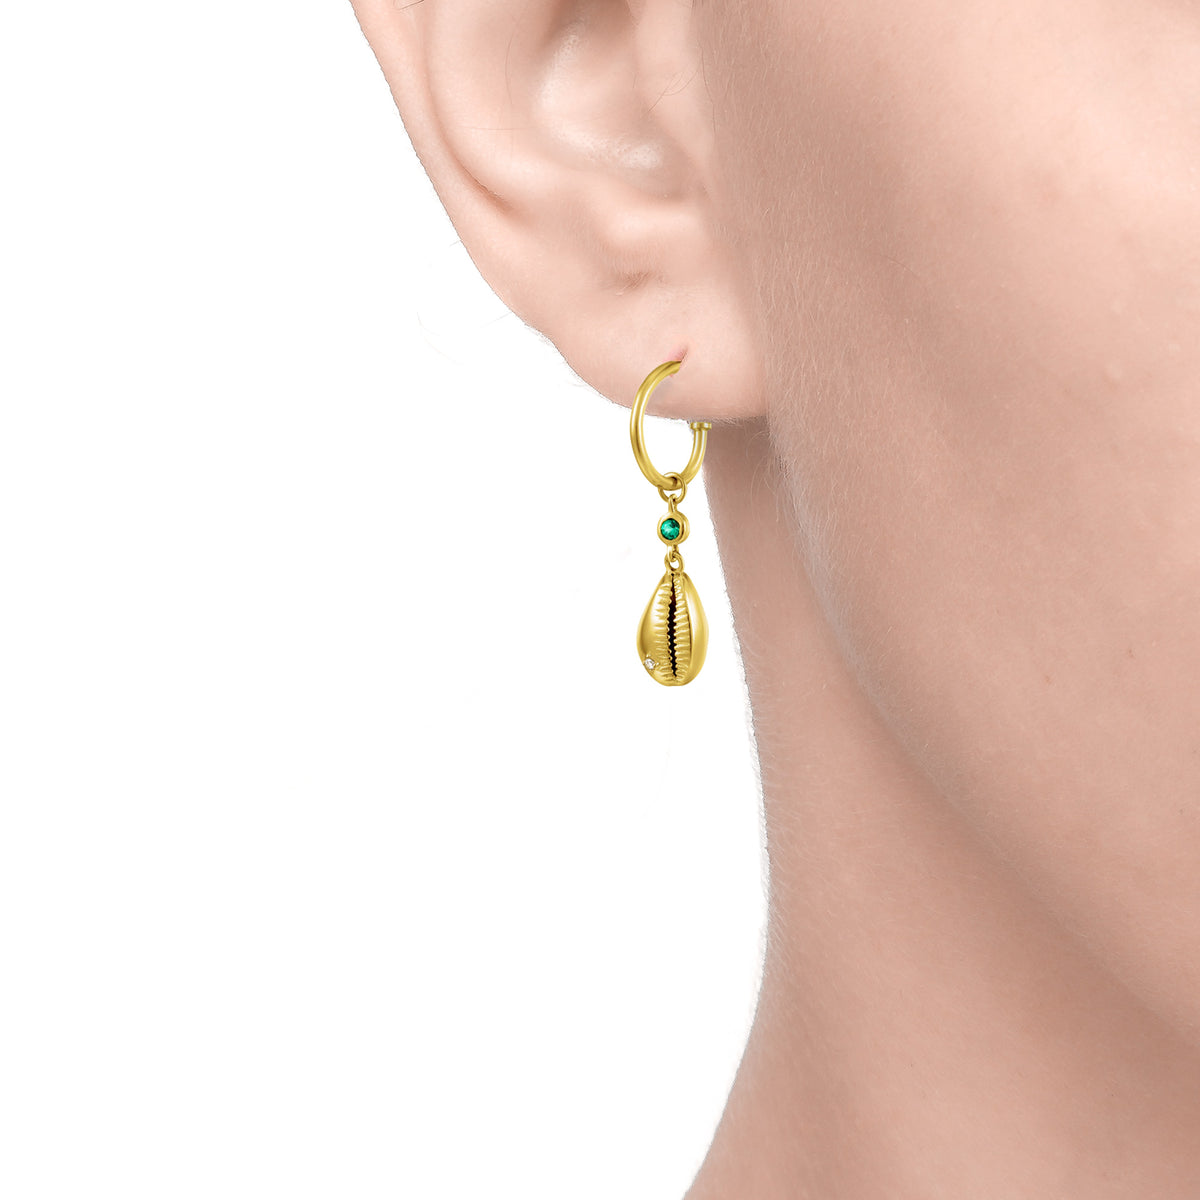 Carmenta | Hawai Earrings | 925 Silver | Green CZ | 14K Gold Plated